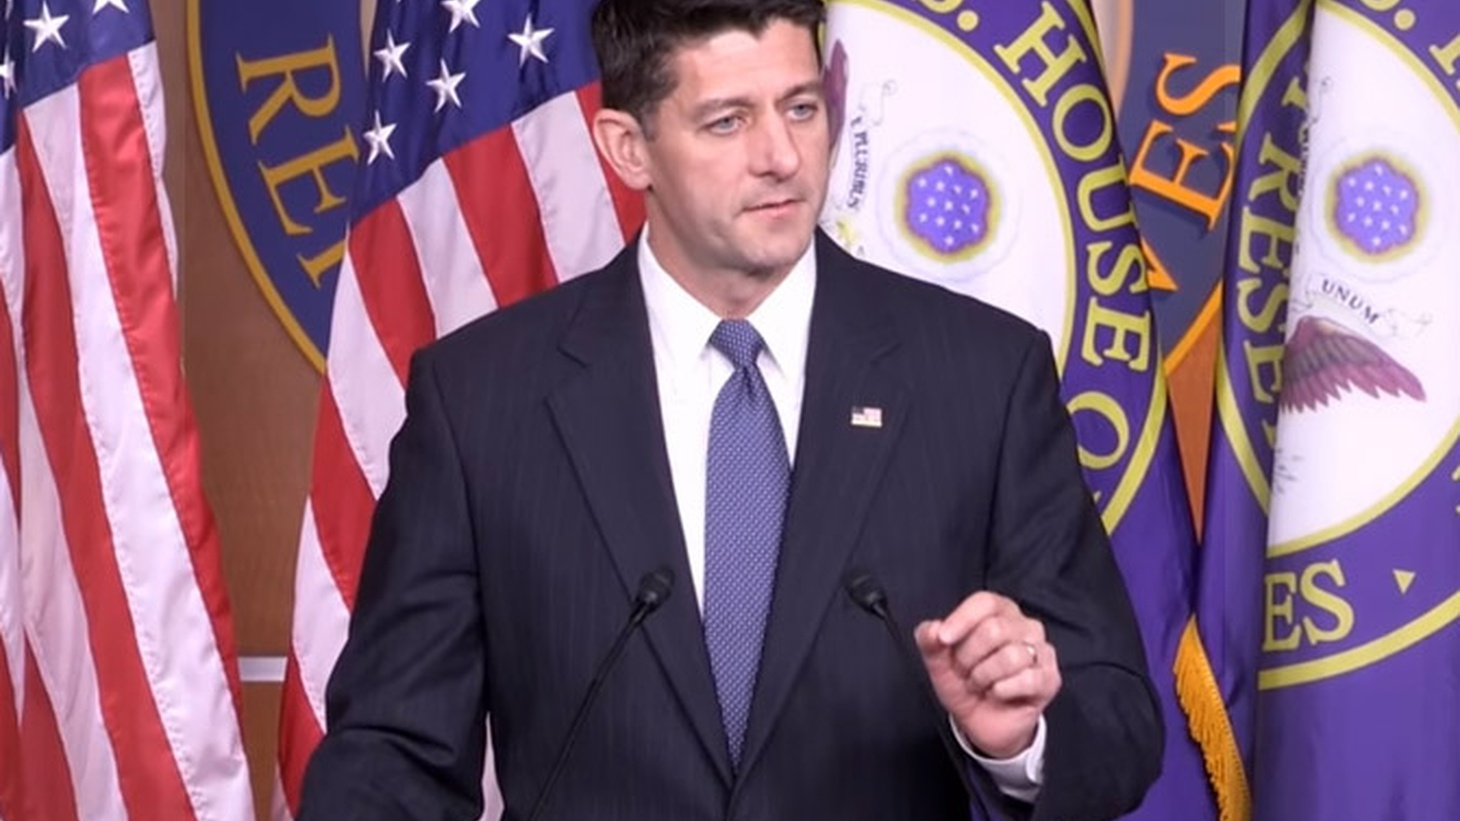 The House passed a budget today already approved by the Senate. If the President signs off, it will pave the way to consideration of massive tax cuts. But Speaker Paul Ryan declined to provide any details.